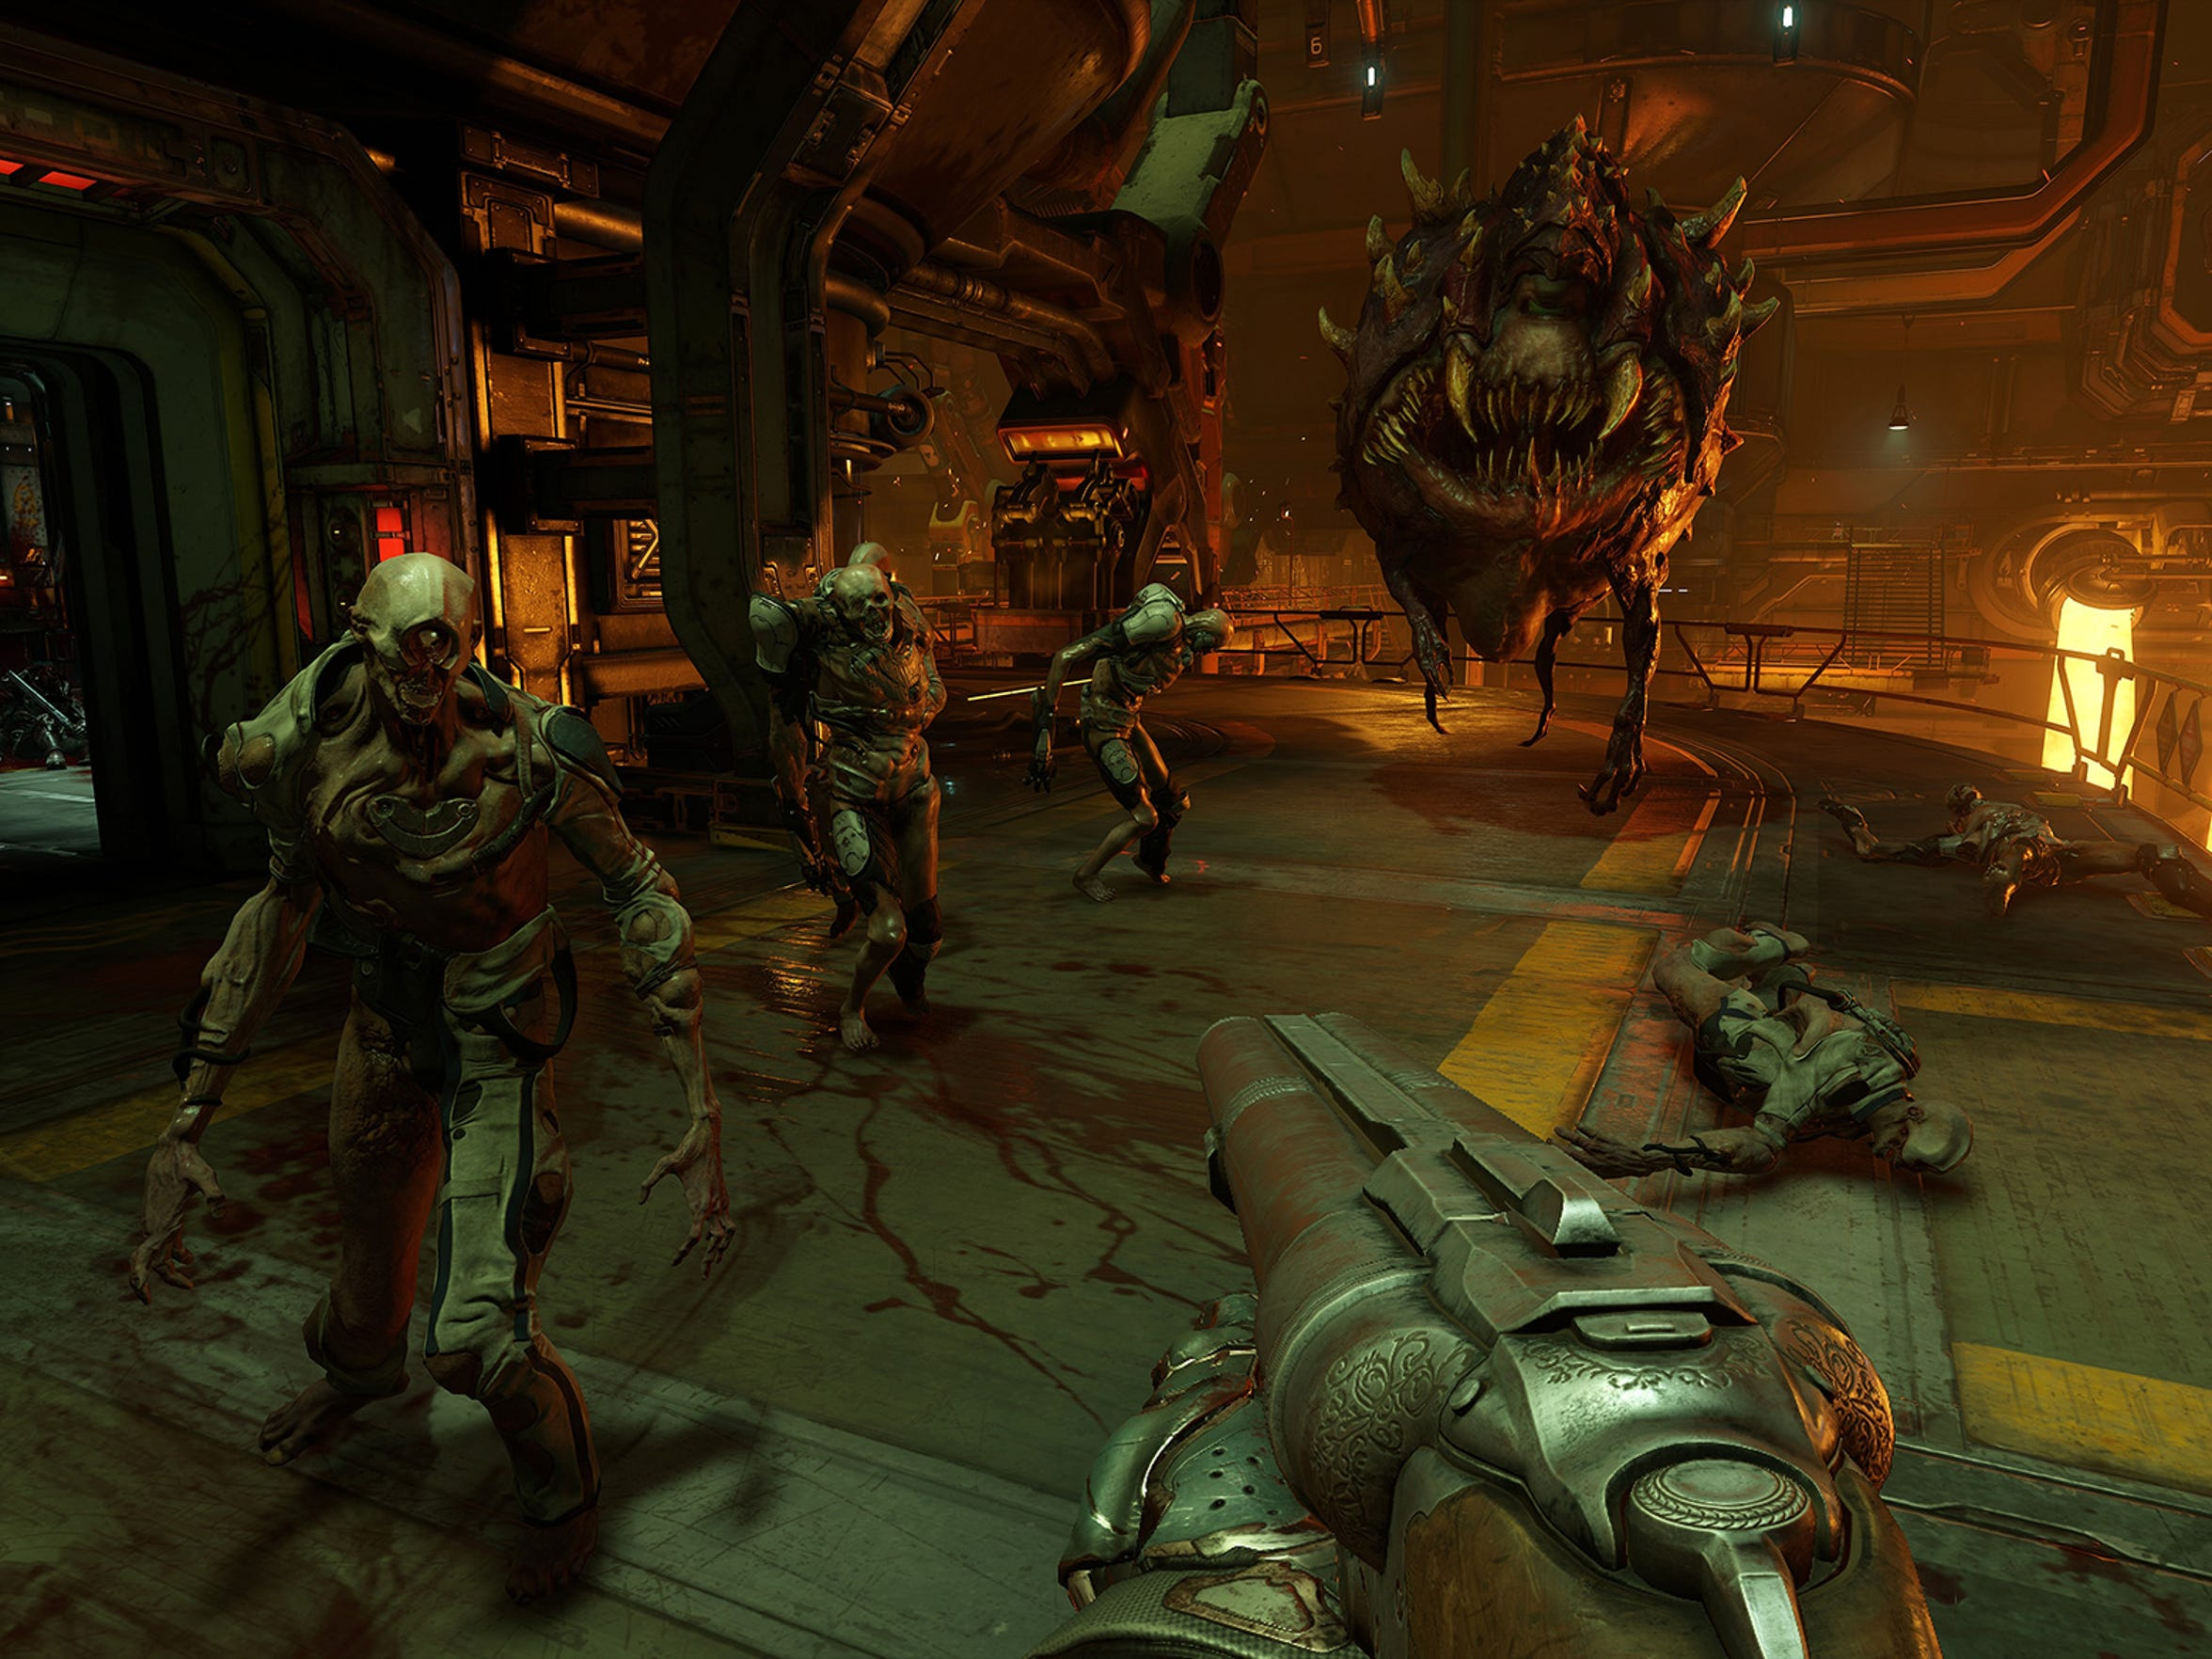 Fight the hordes of hell once more in Doom for PC,